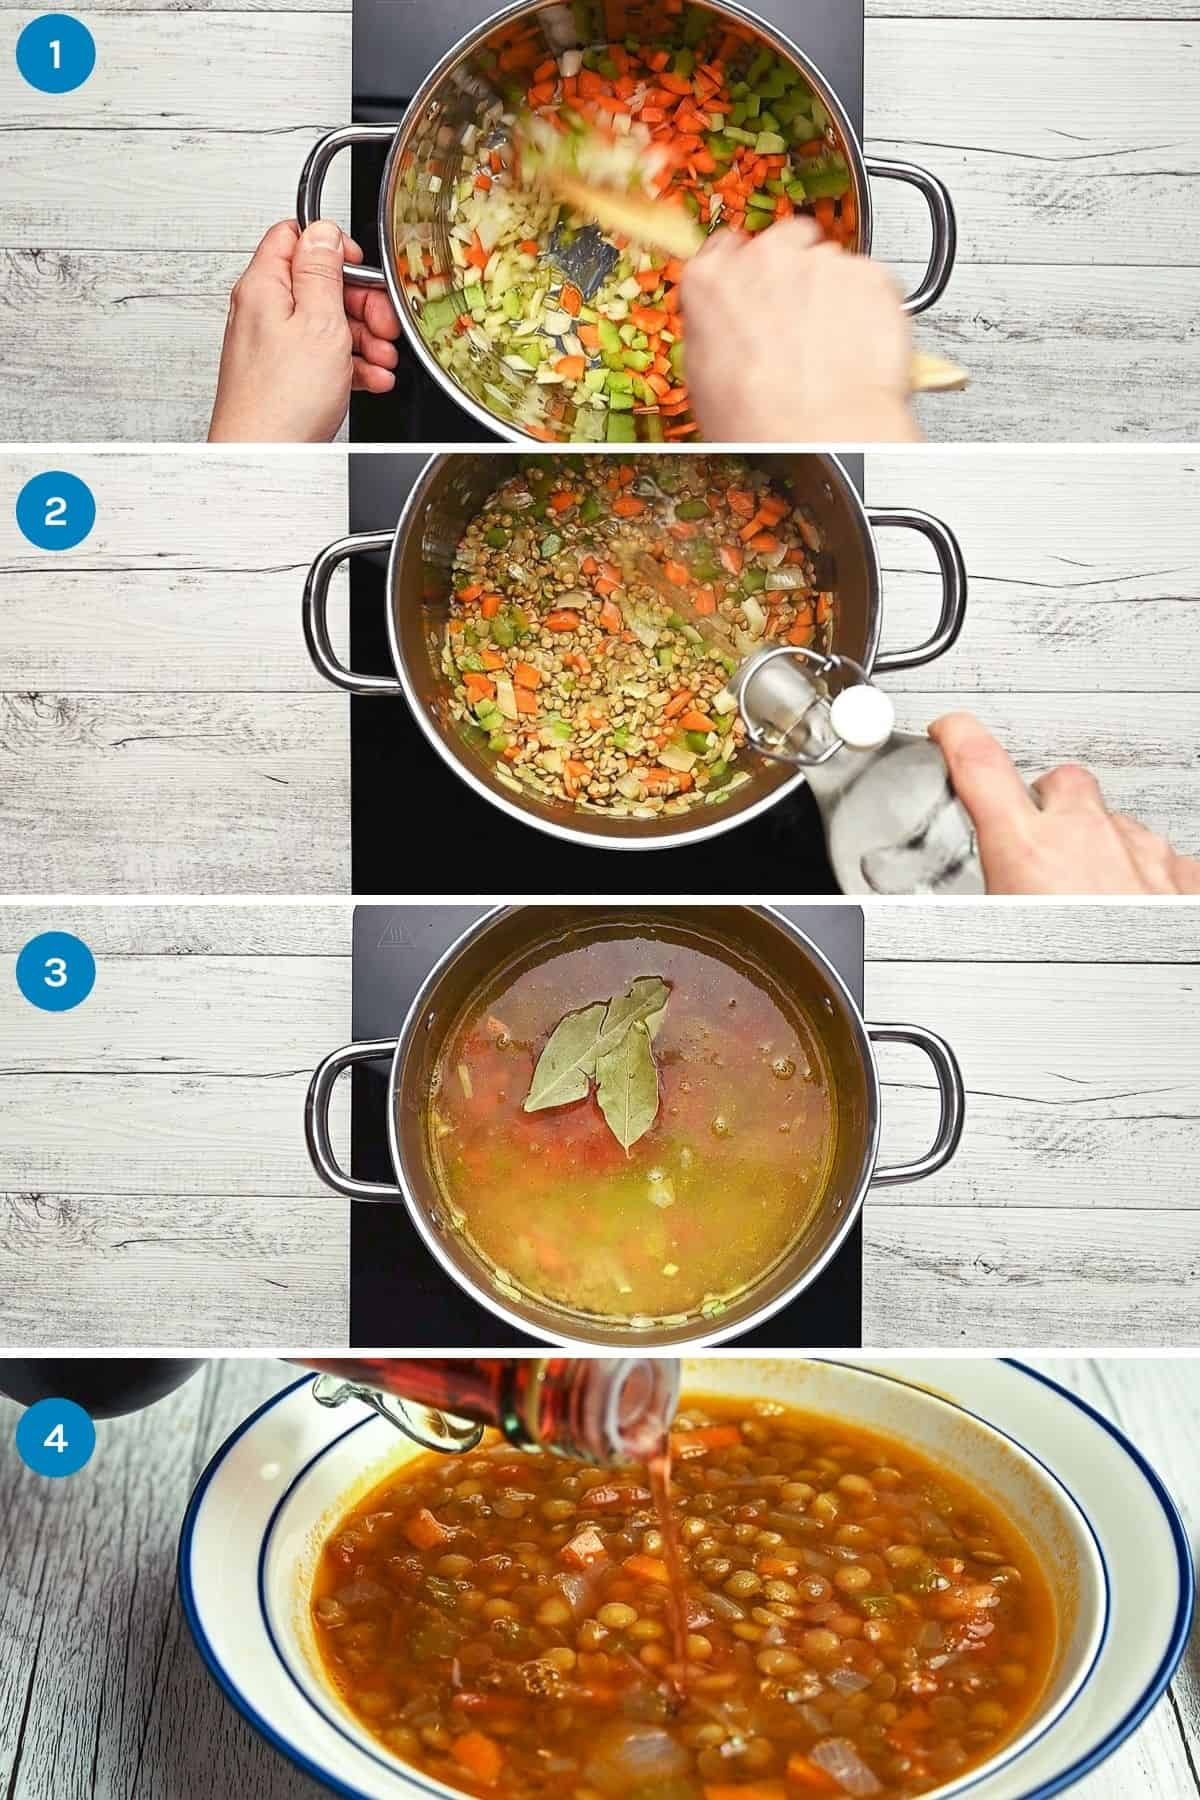 step by step instructions of how tio make Greek lentil soup